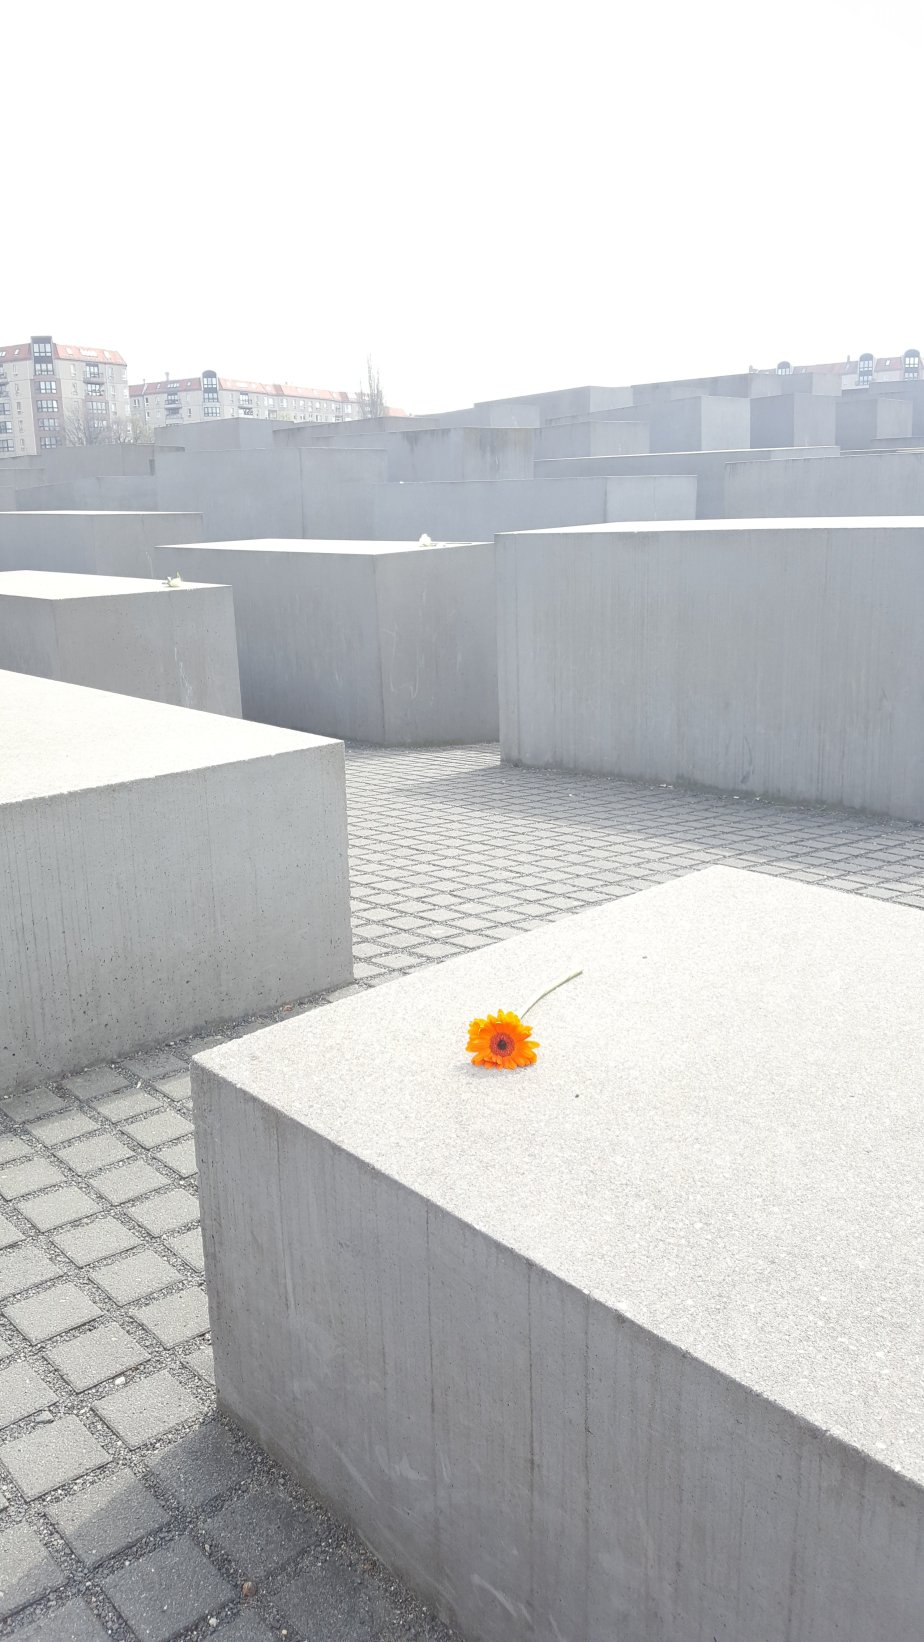 It's easy to get literally and figuratively lost in within the concrete blocks